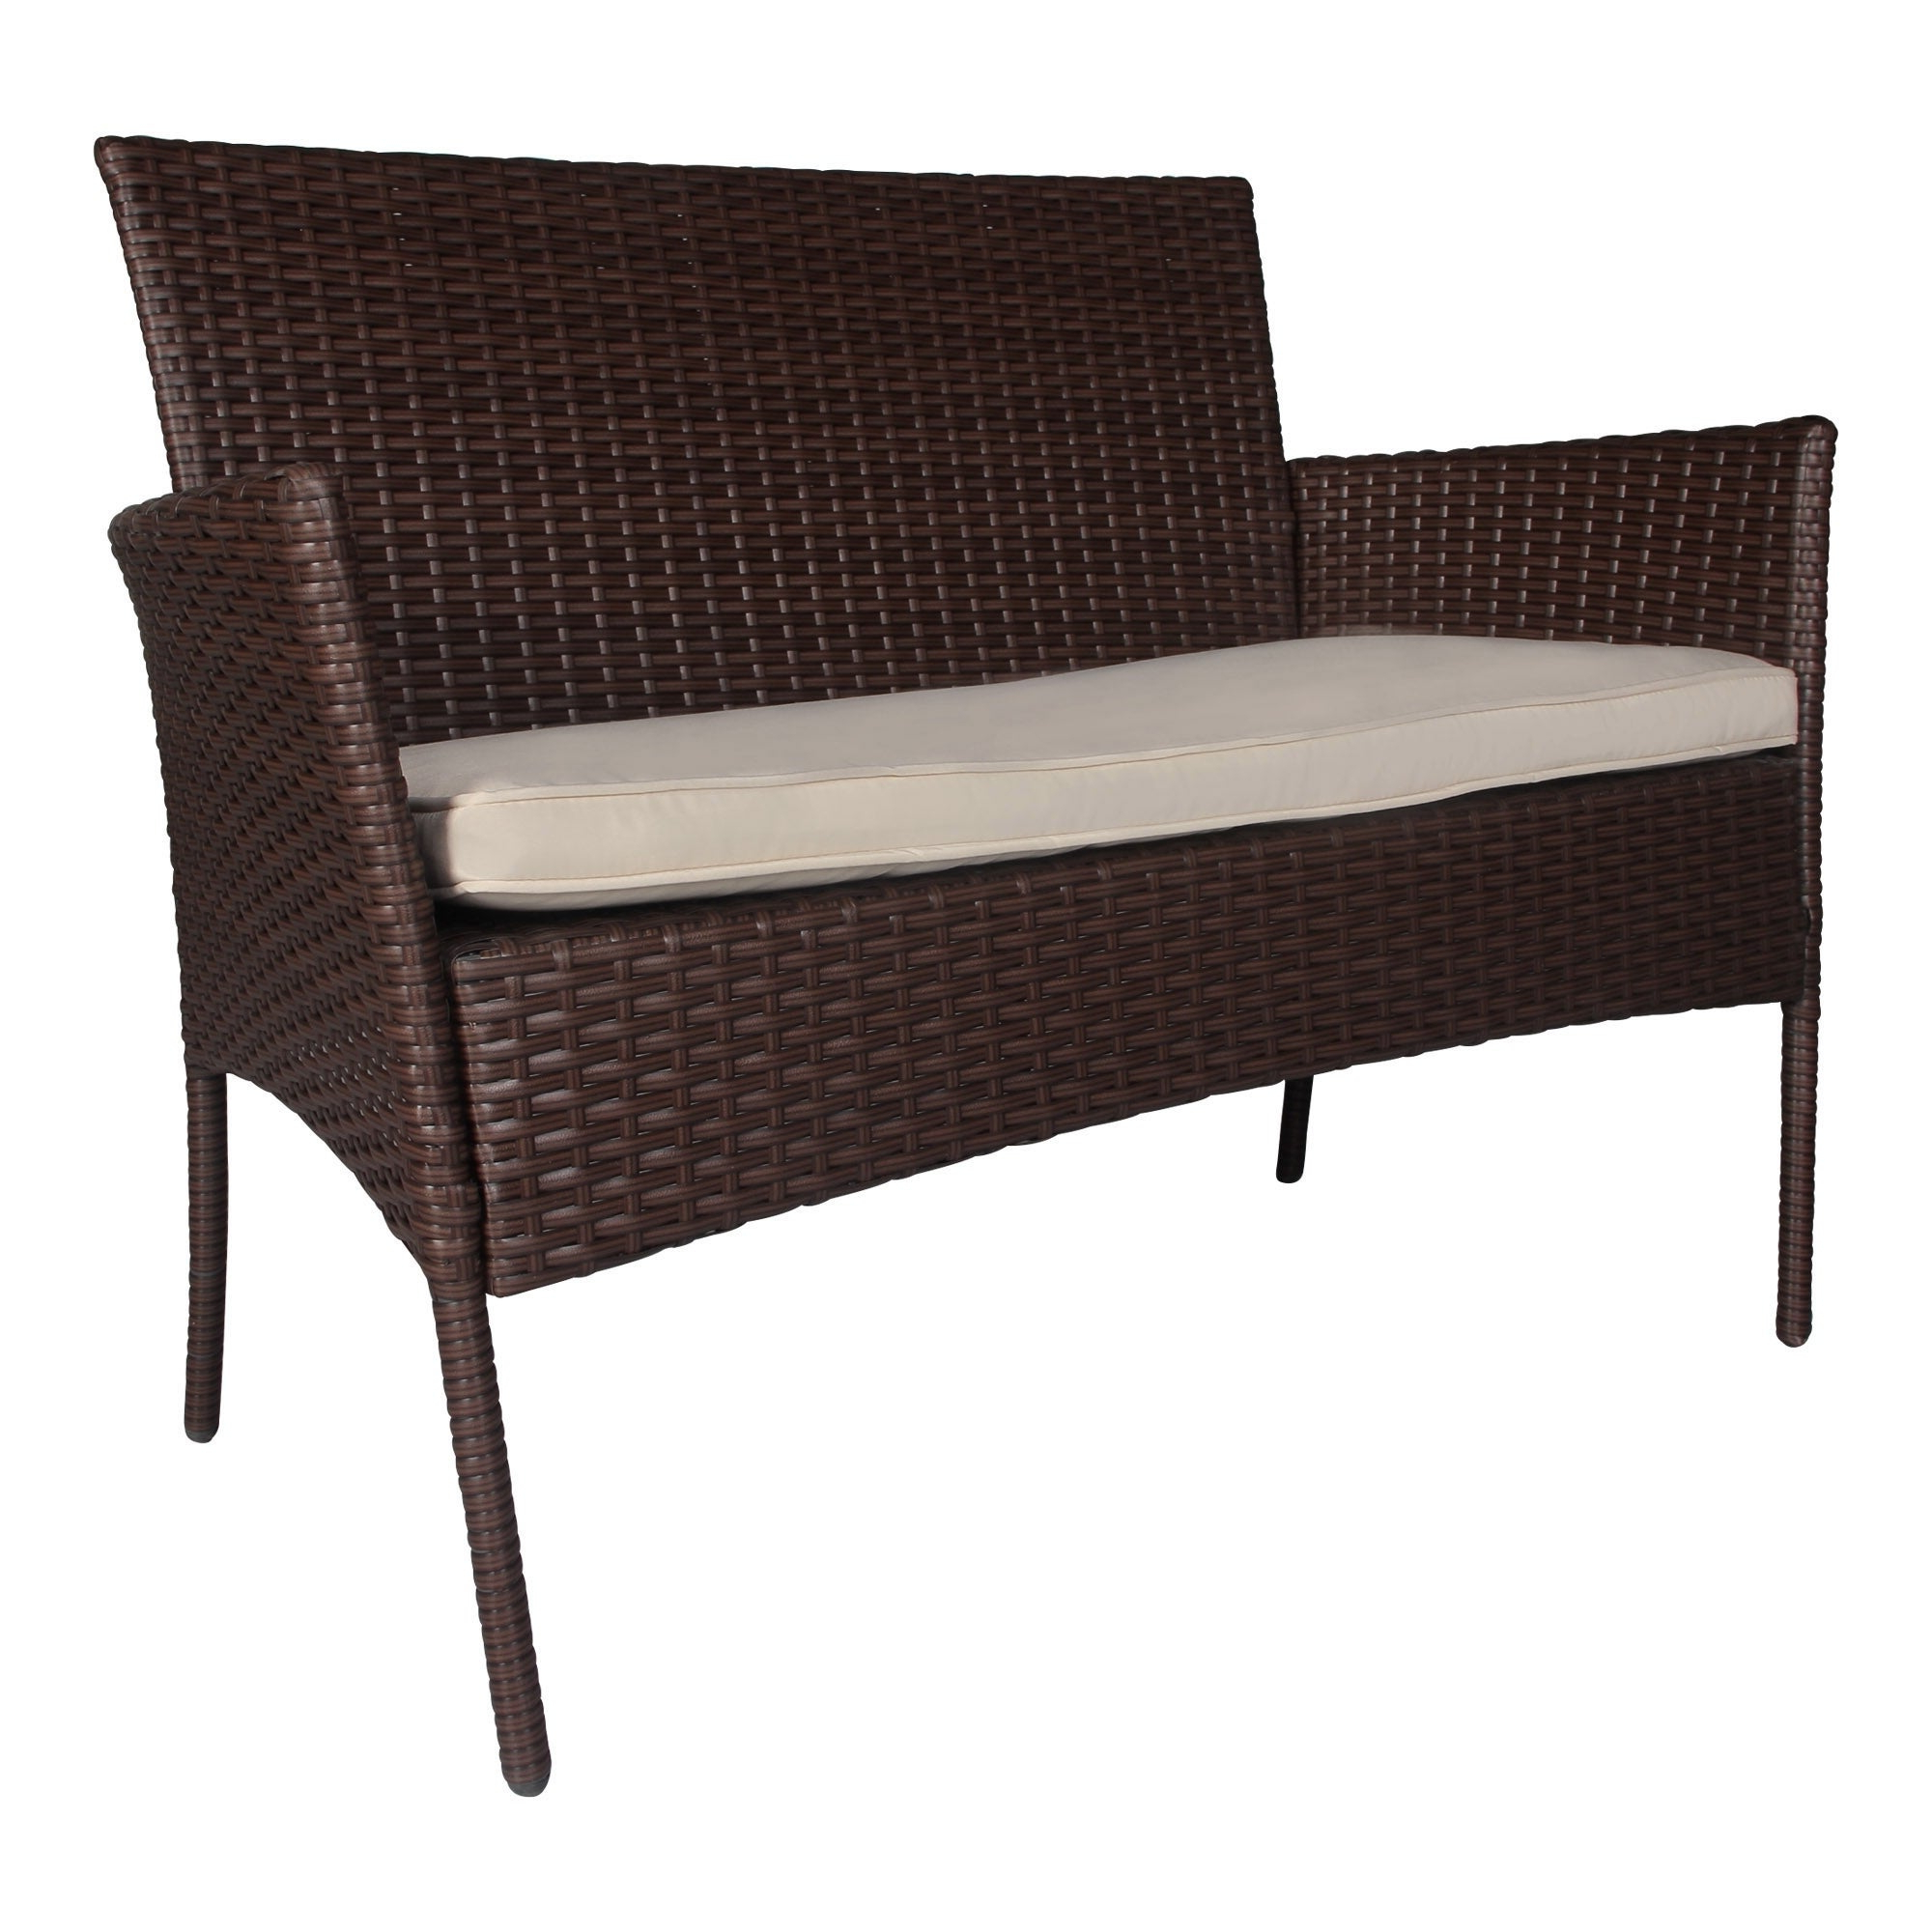 Newest Boyce Outdoor Patio Sectionals With Cushions Within Boyce 4 Piece Wicker Rattan Conversation Set (View 20 of 25)